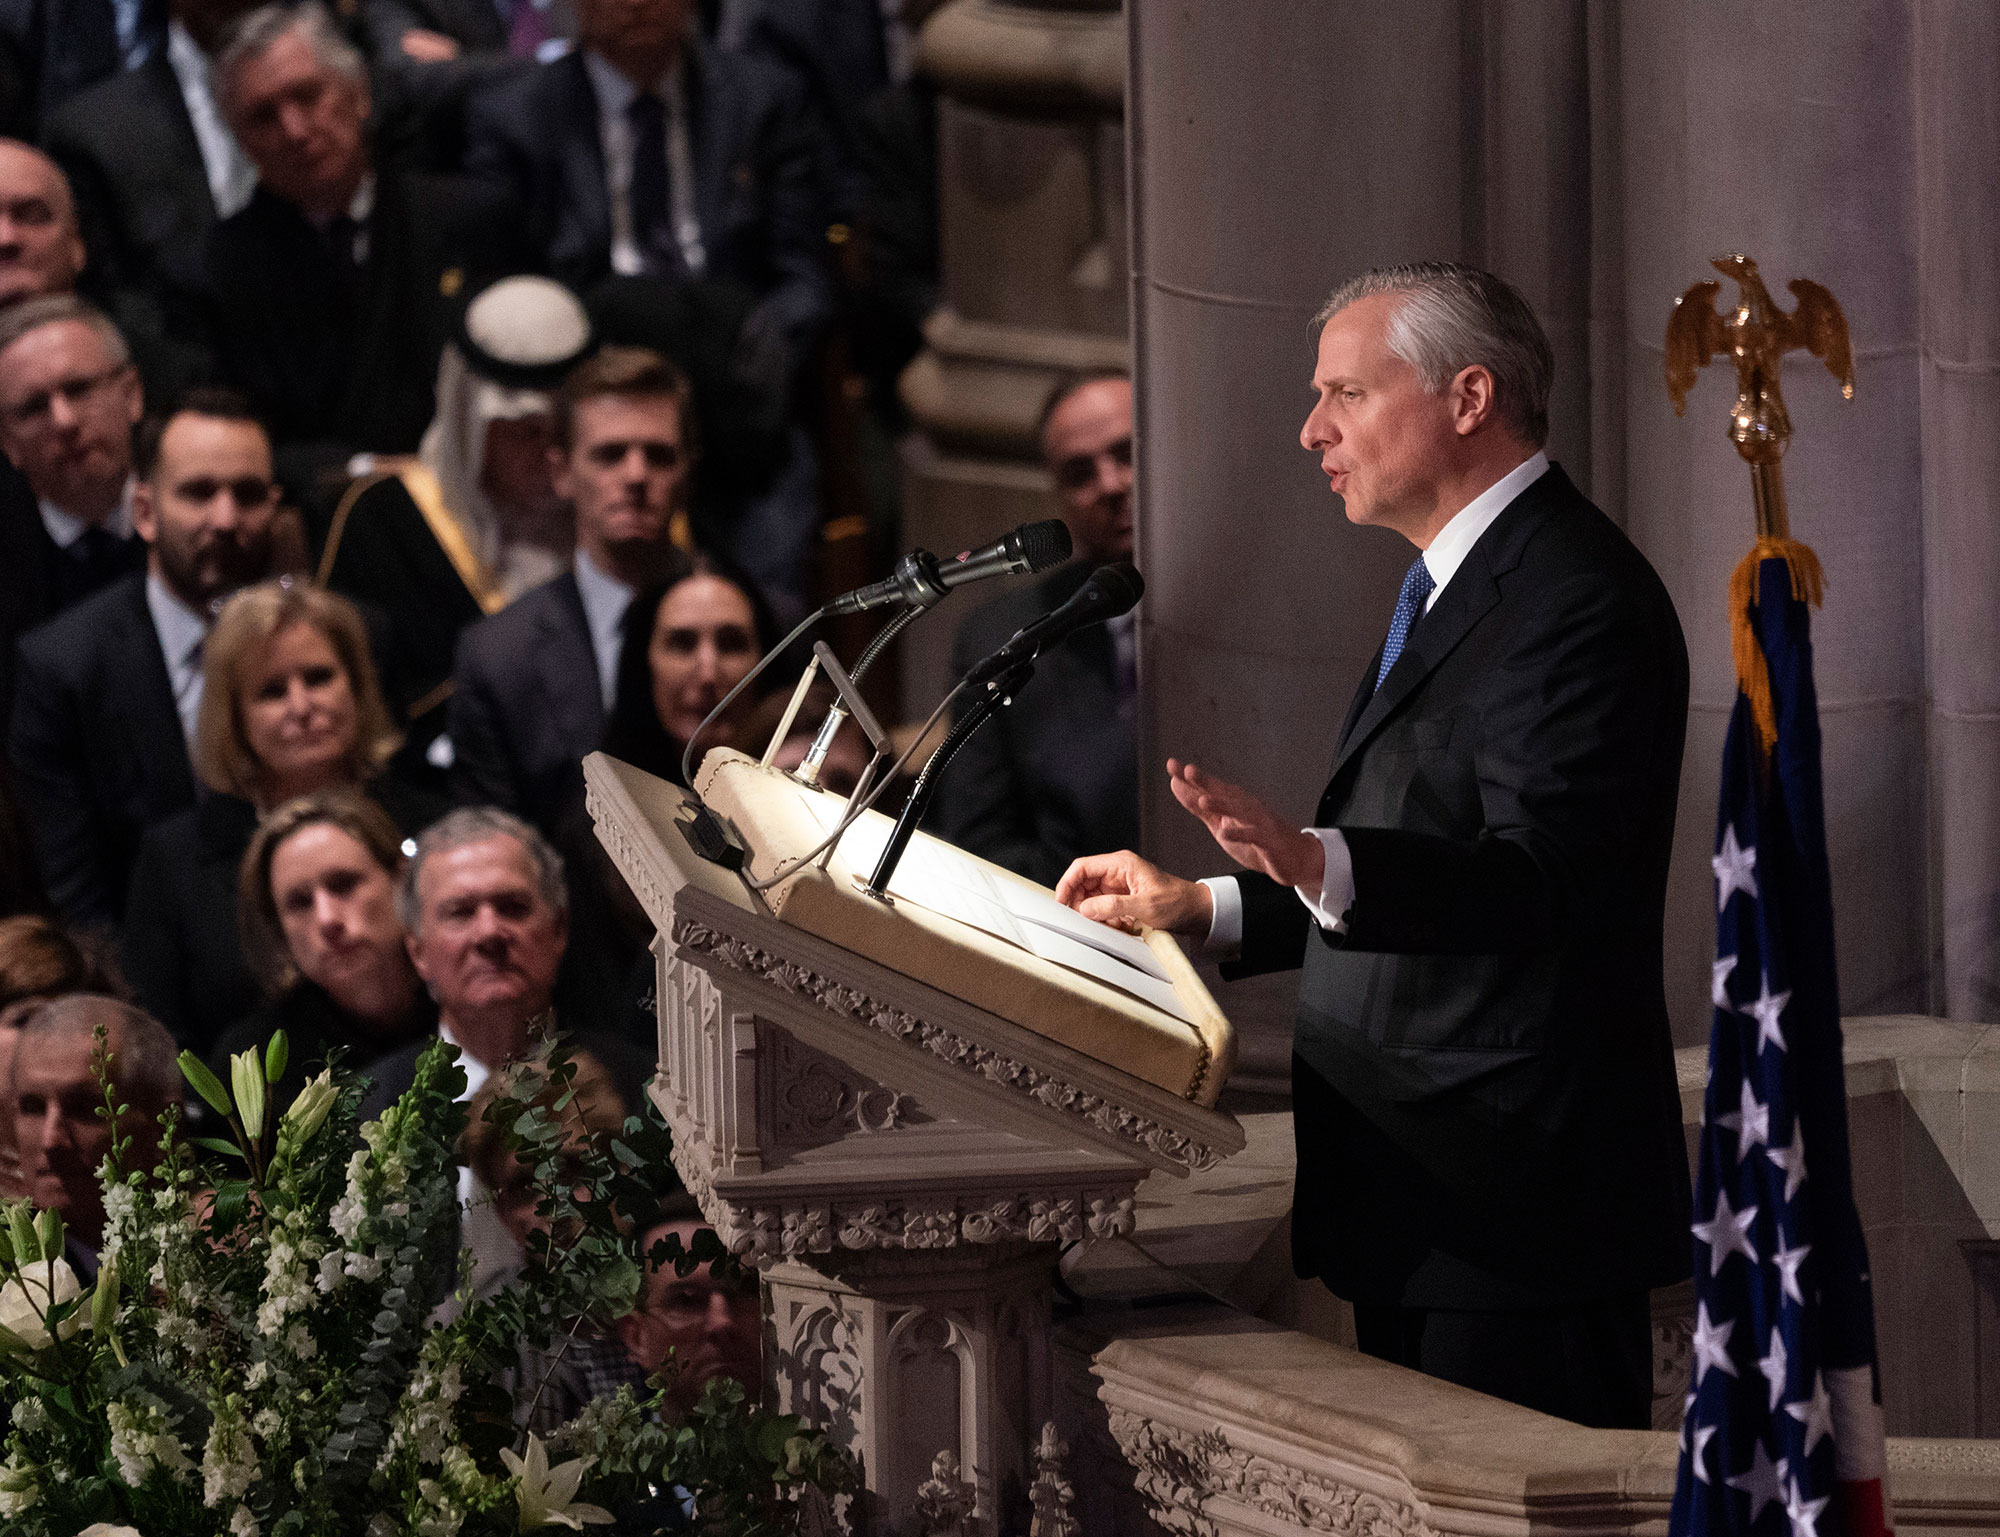 "<div class=""meta image-caption""><div class=""origin-logo origin-image none""><span>none</span></div><span class=""caption-text"">Presidential historian and biographer Jon Meacham delivers a eulogy at the state funeral service of former President George W. Bush, (Chris Kleponis / Polaris)</span></div>"